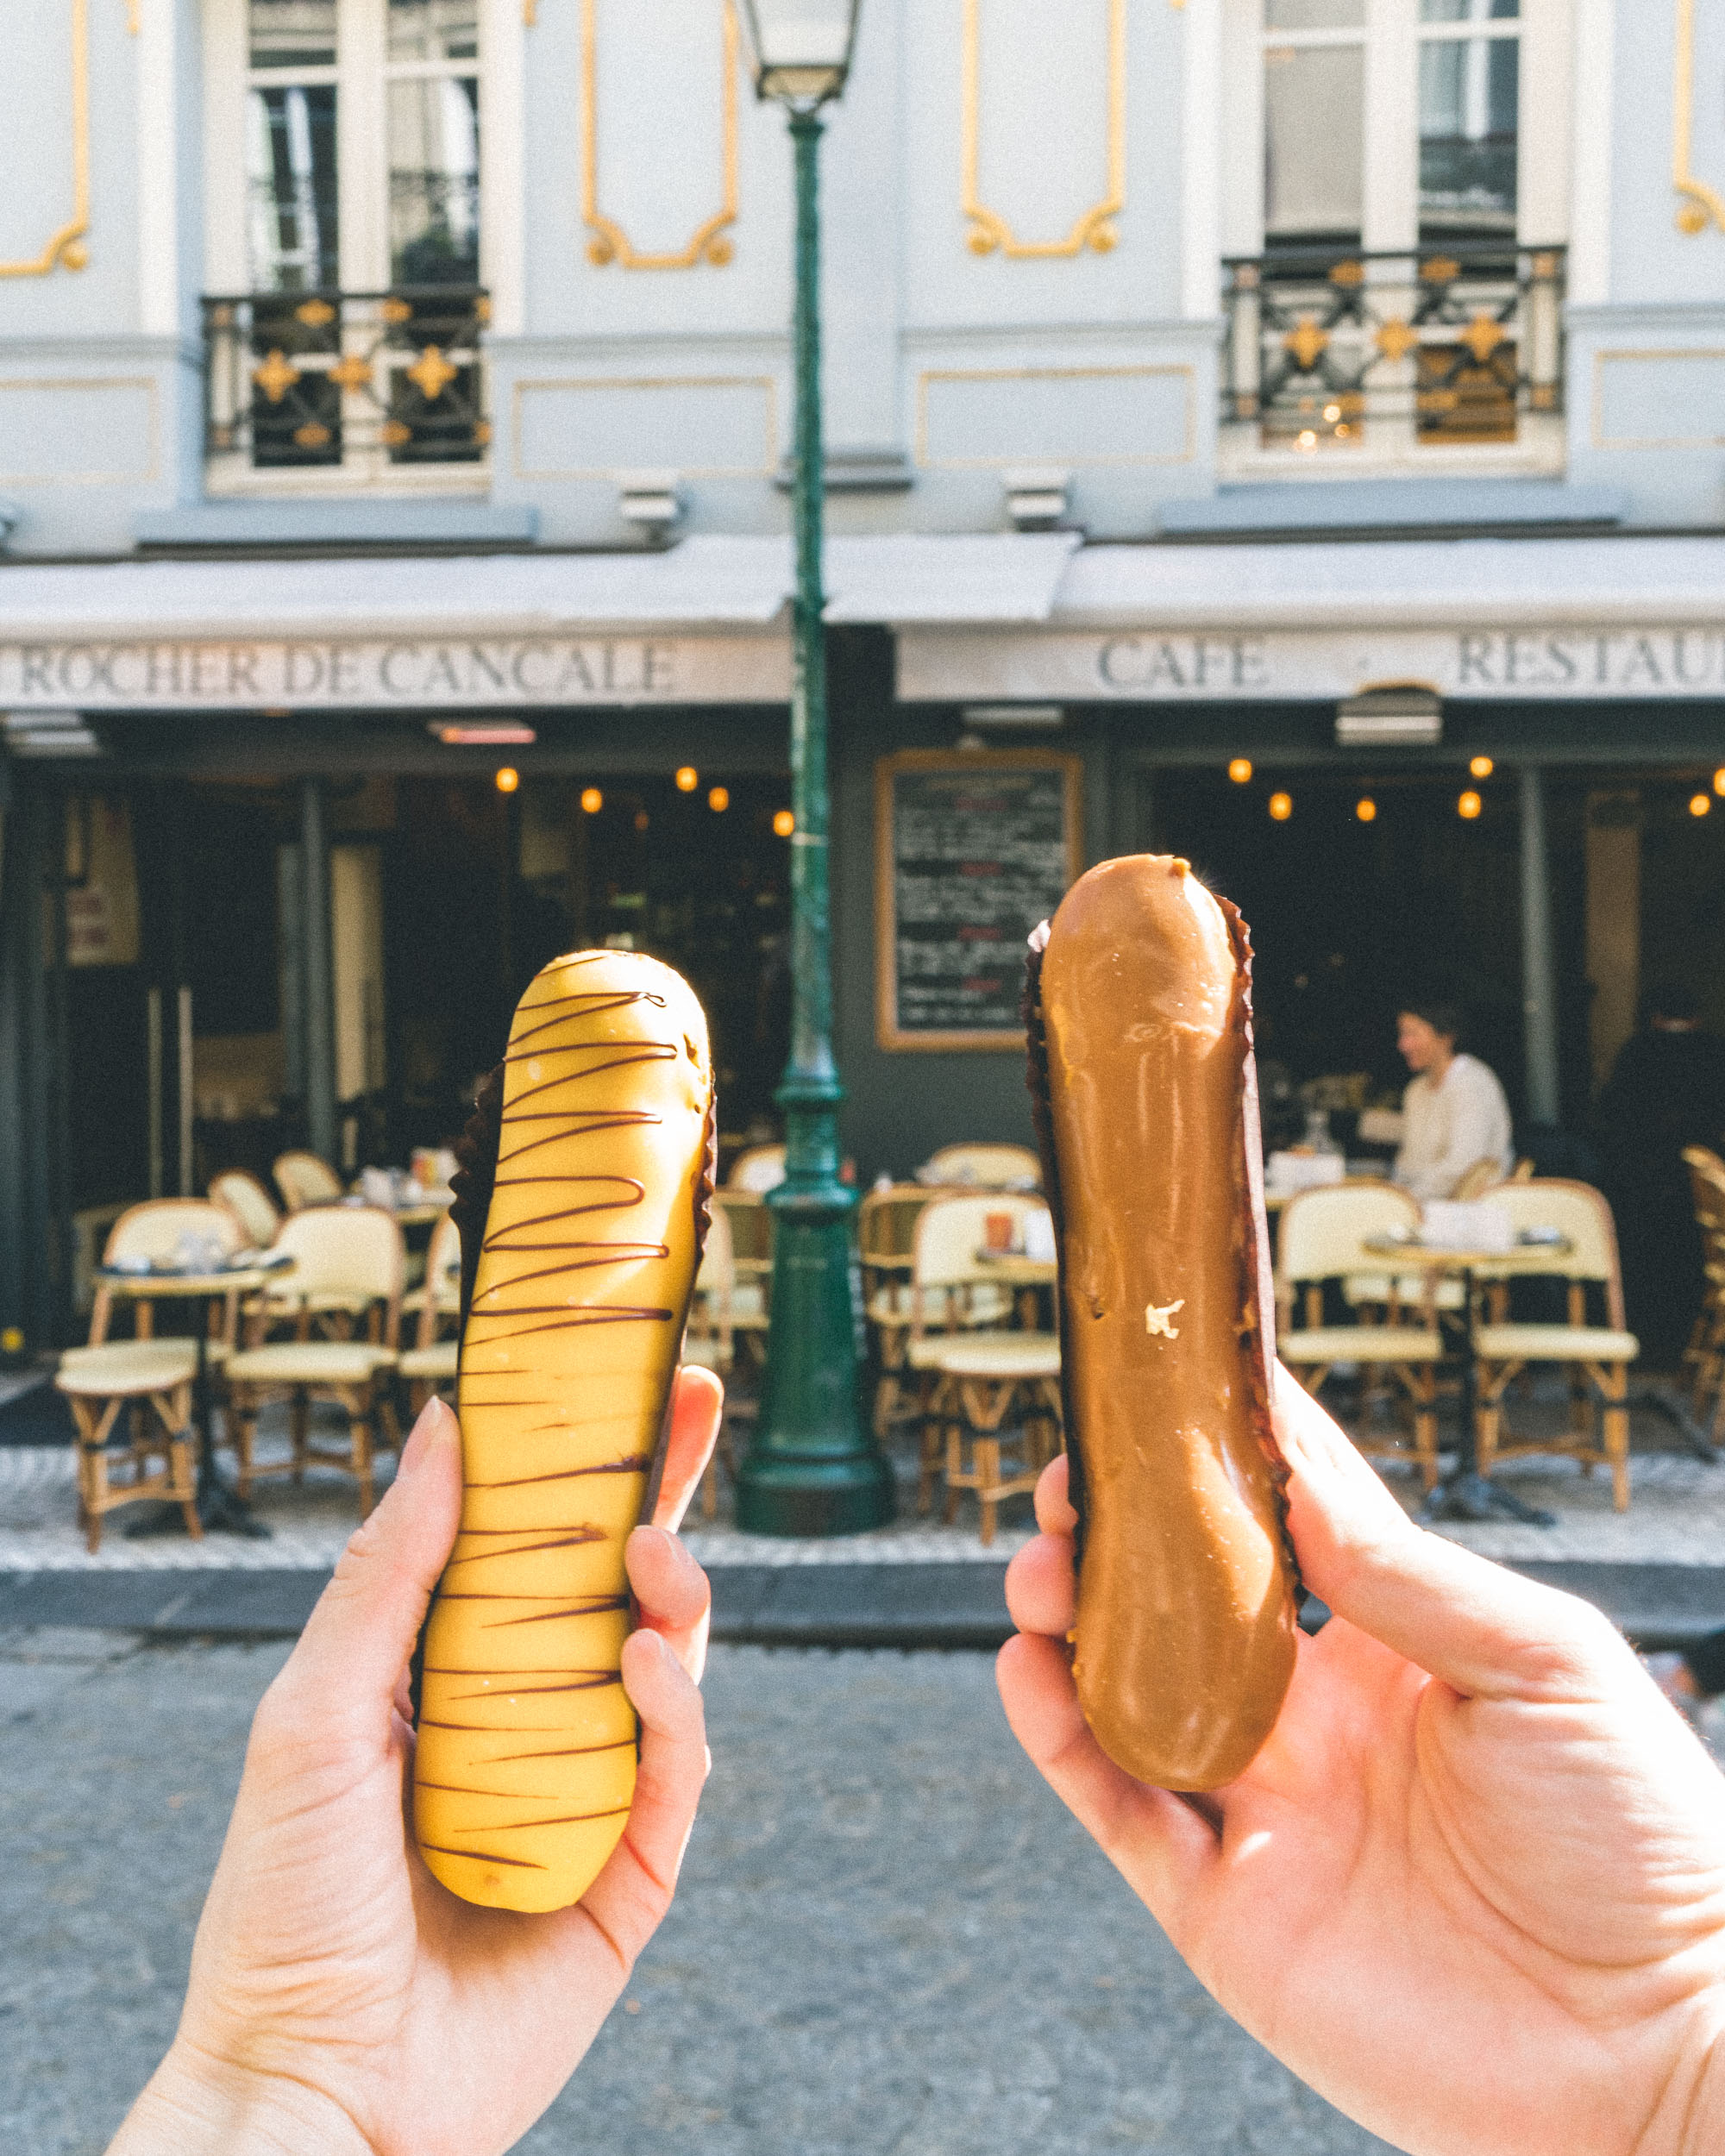 The best eclairs and pastries at Stohrer in Paris - Complete Paris Travel Guide